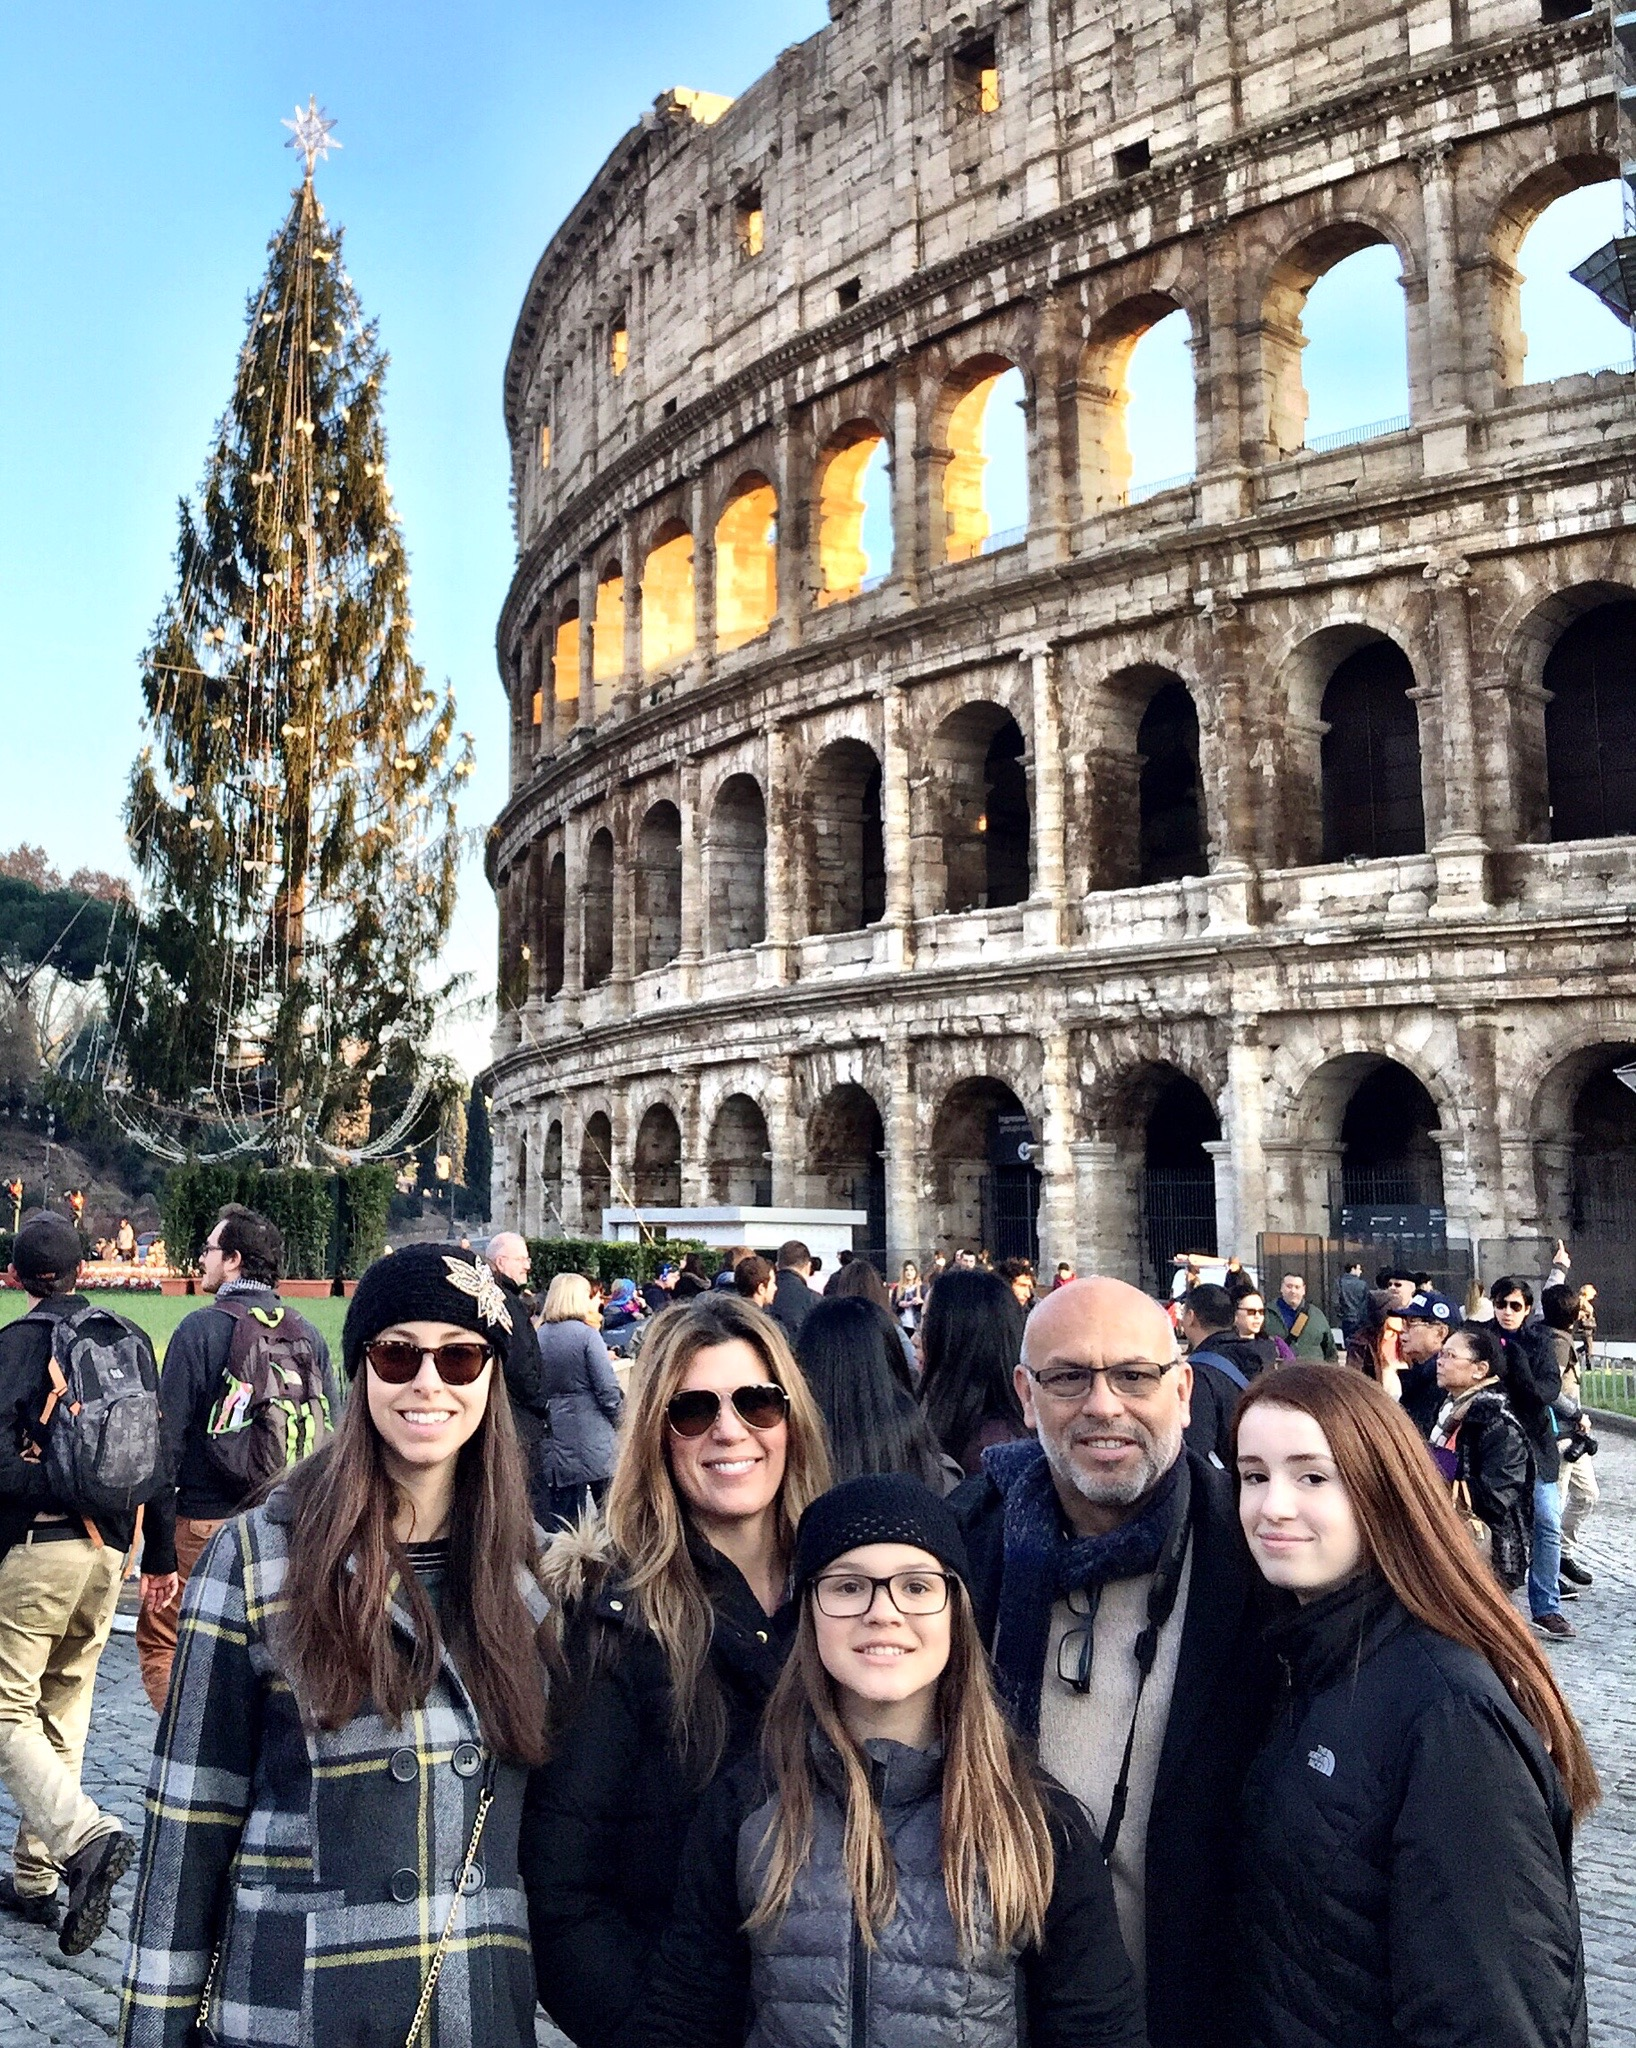 Our 2015/16 Family Holiday Tour of Italy